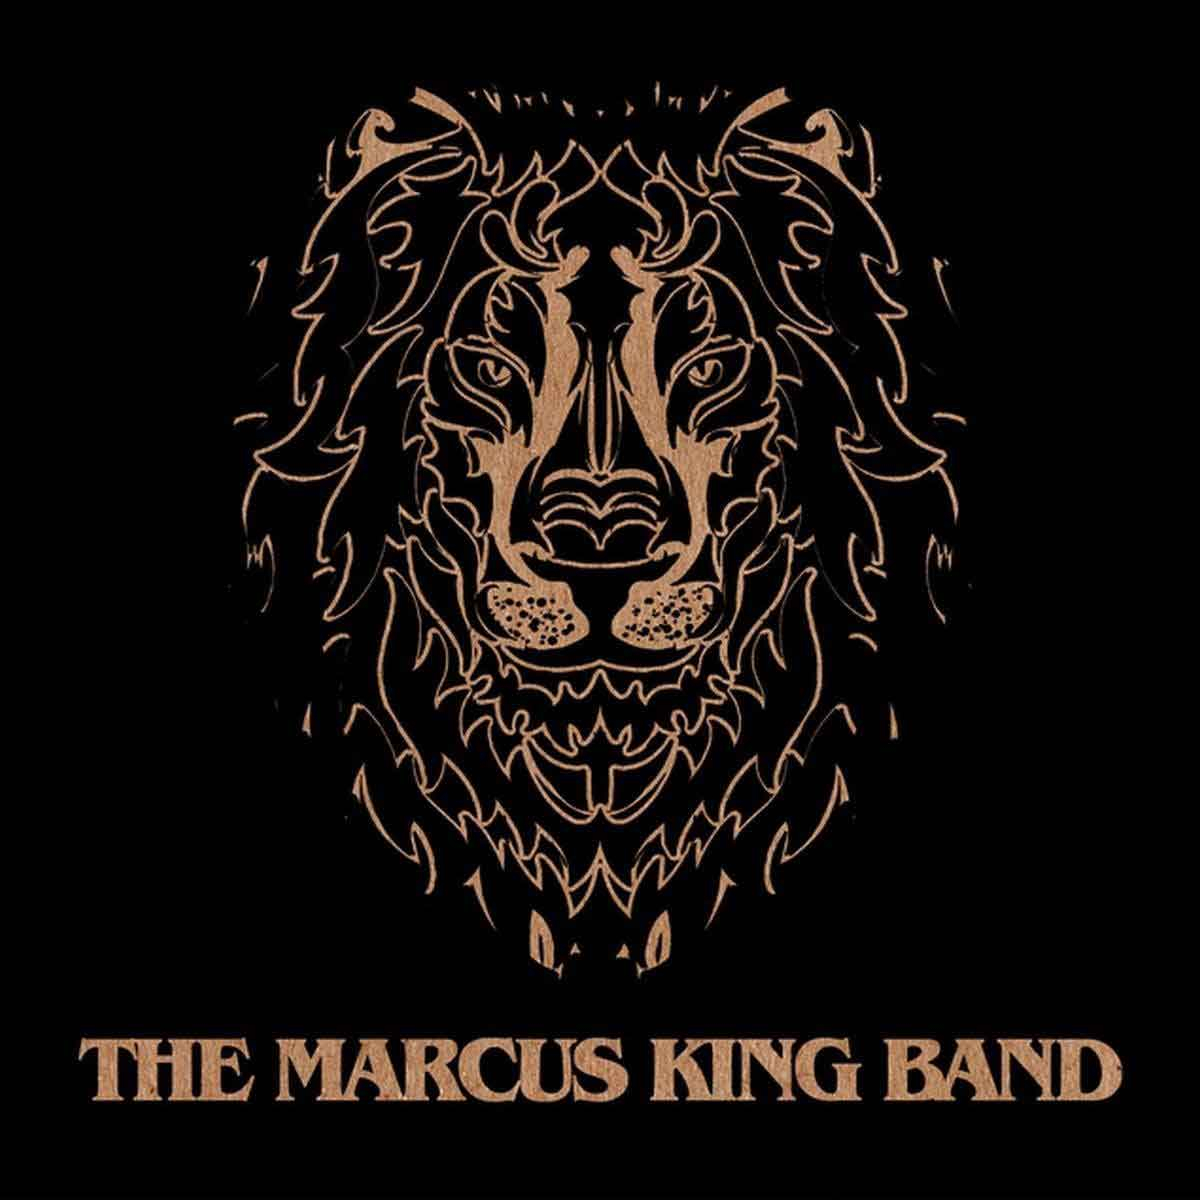 The Marcus King Band – TMKB (2016)